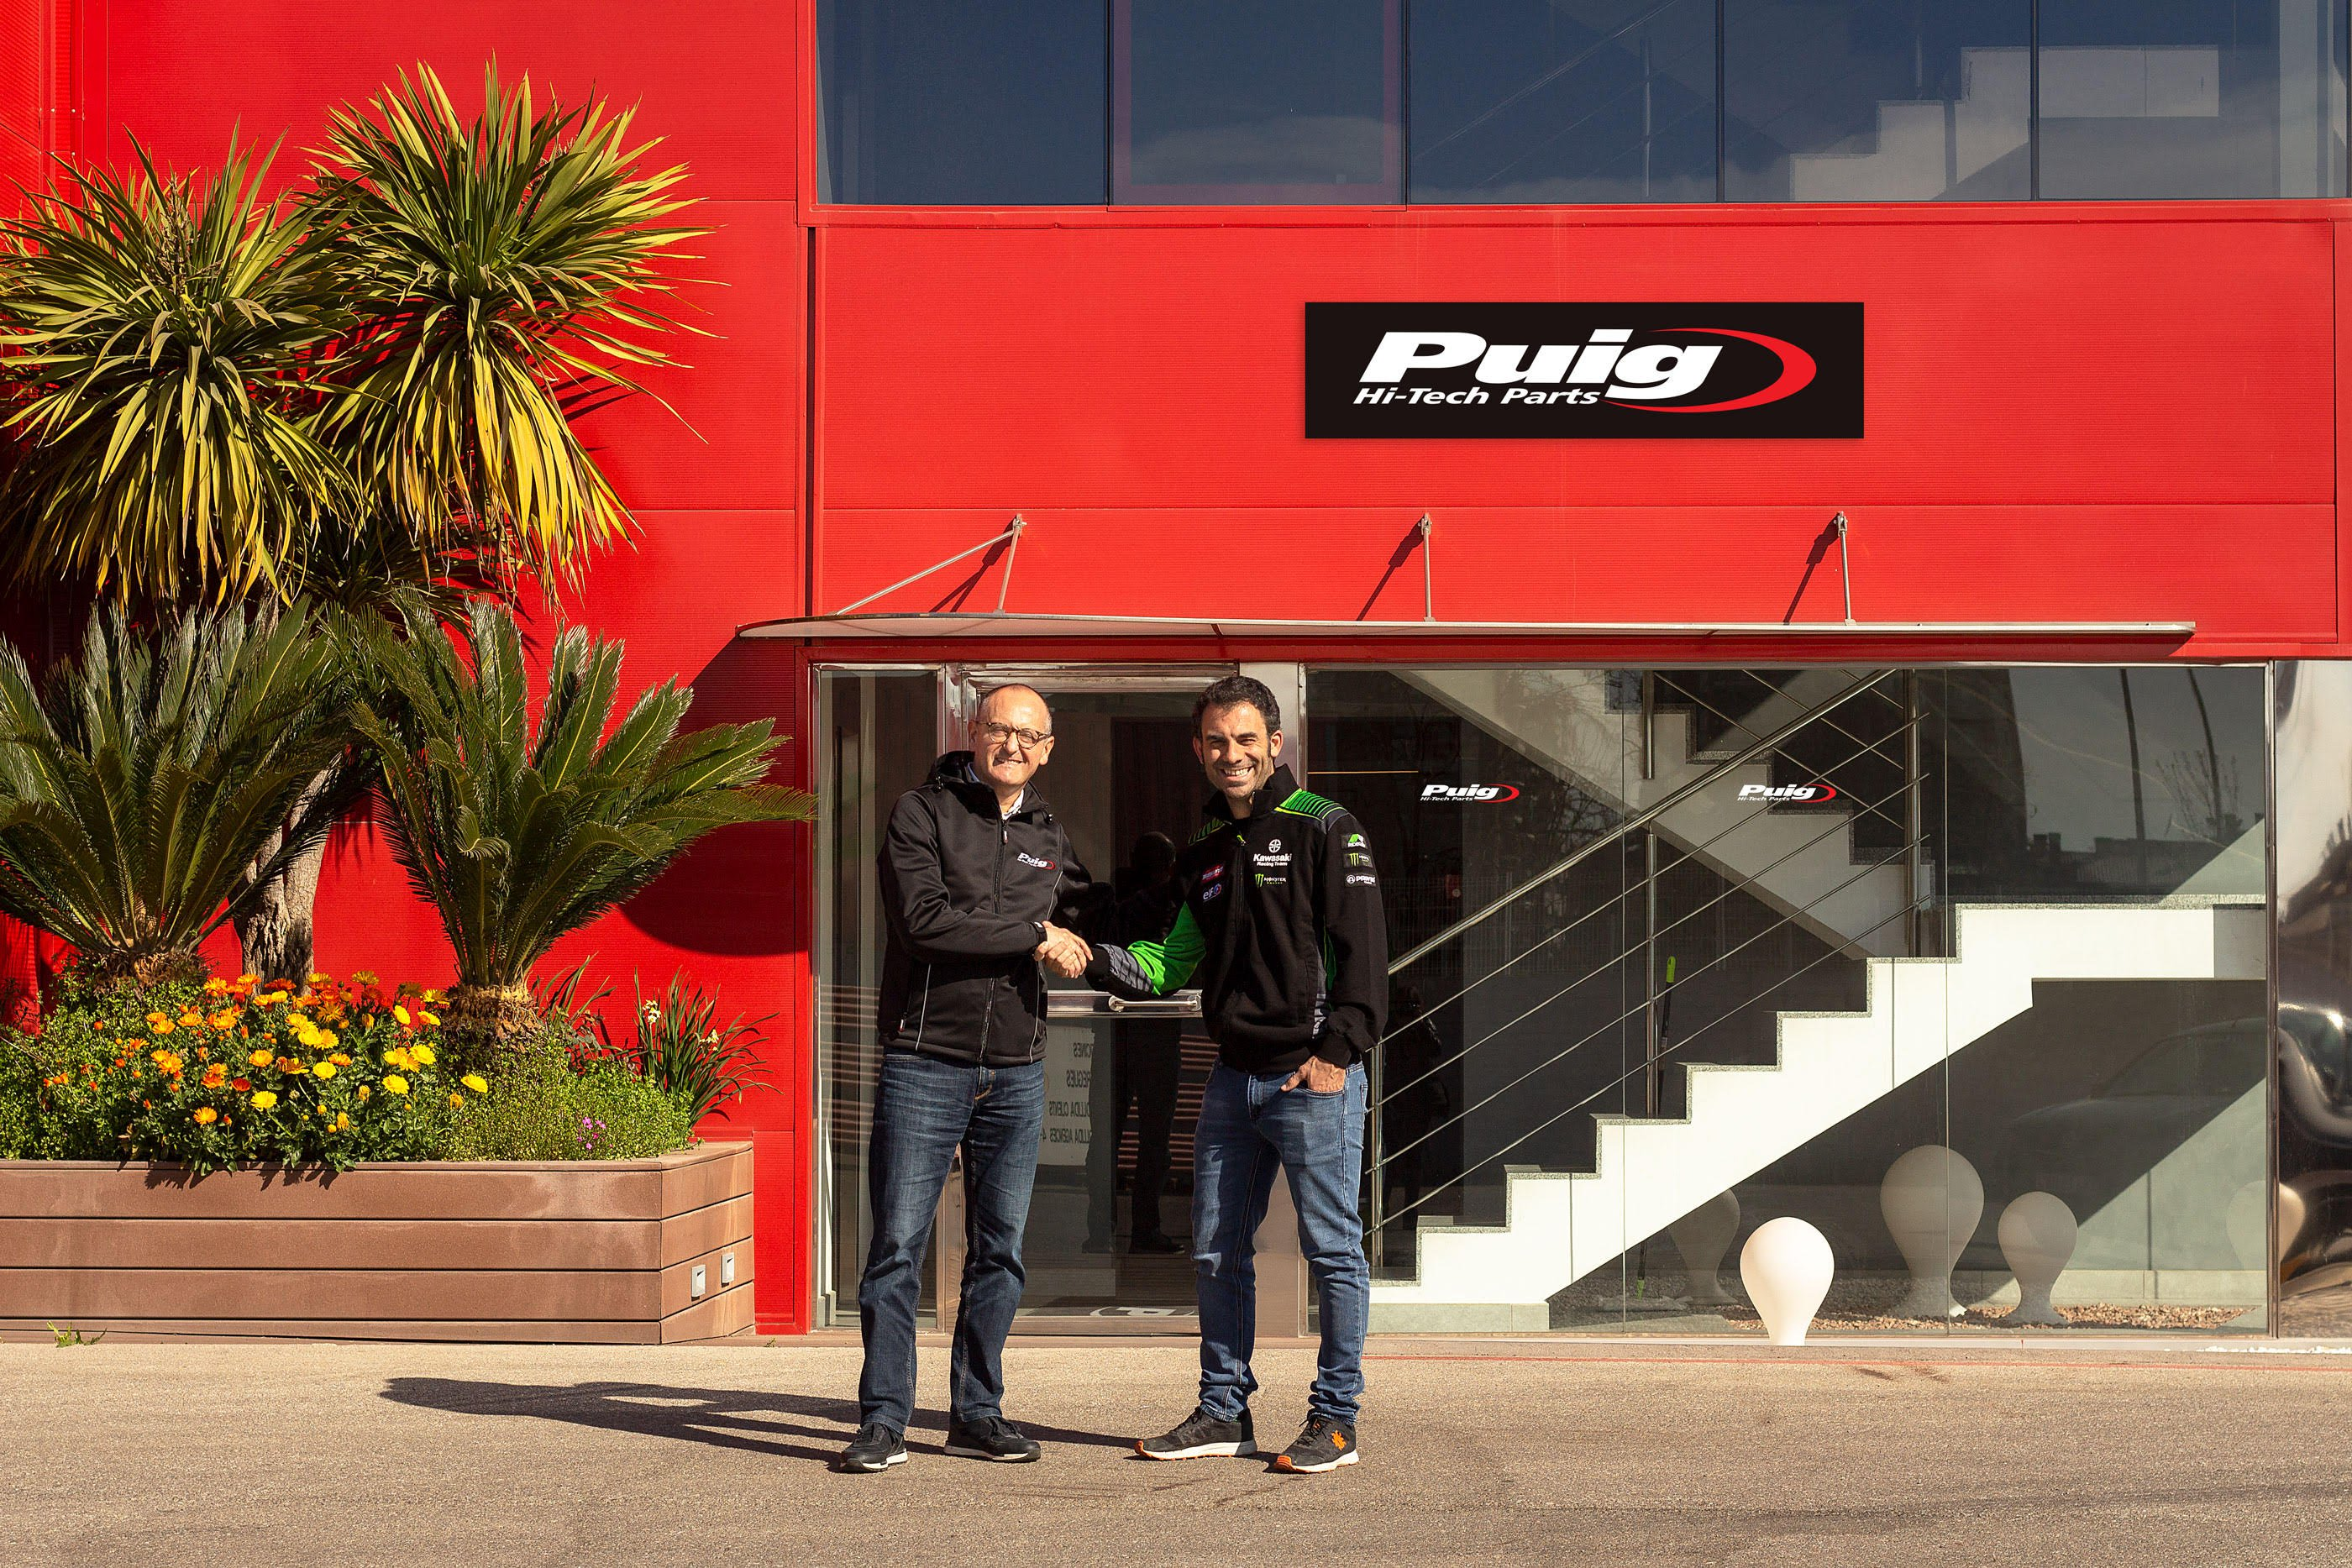 Puig and Kawasaki Racing Team renew their technical collaboration